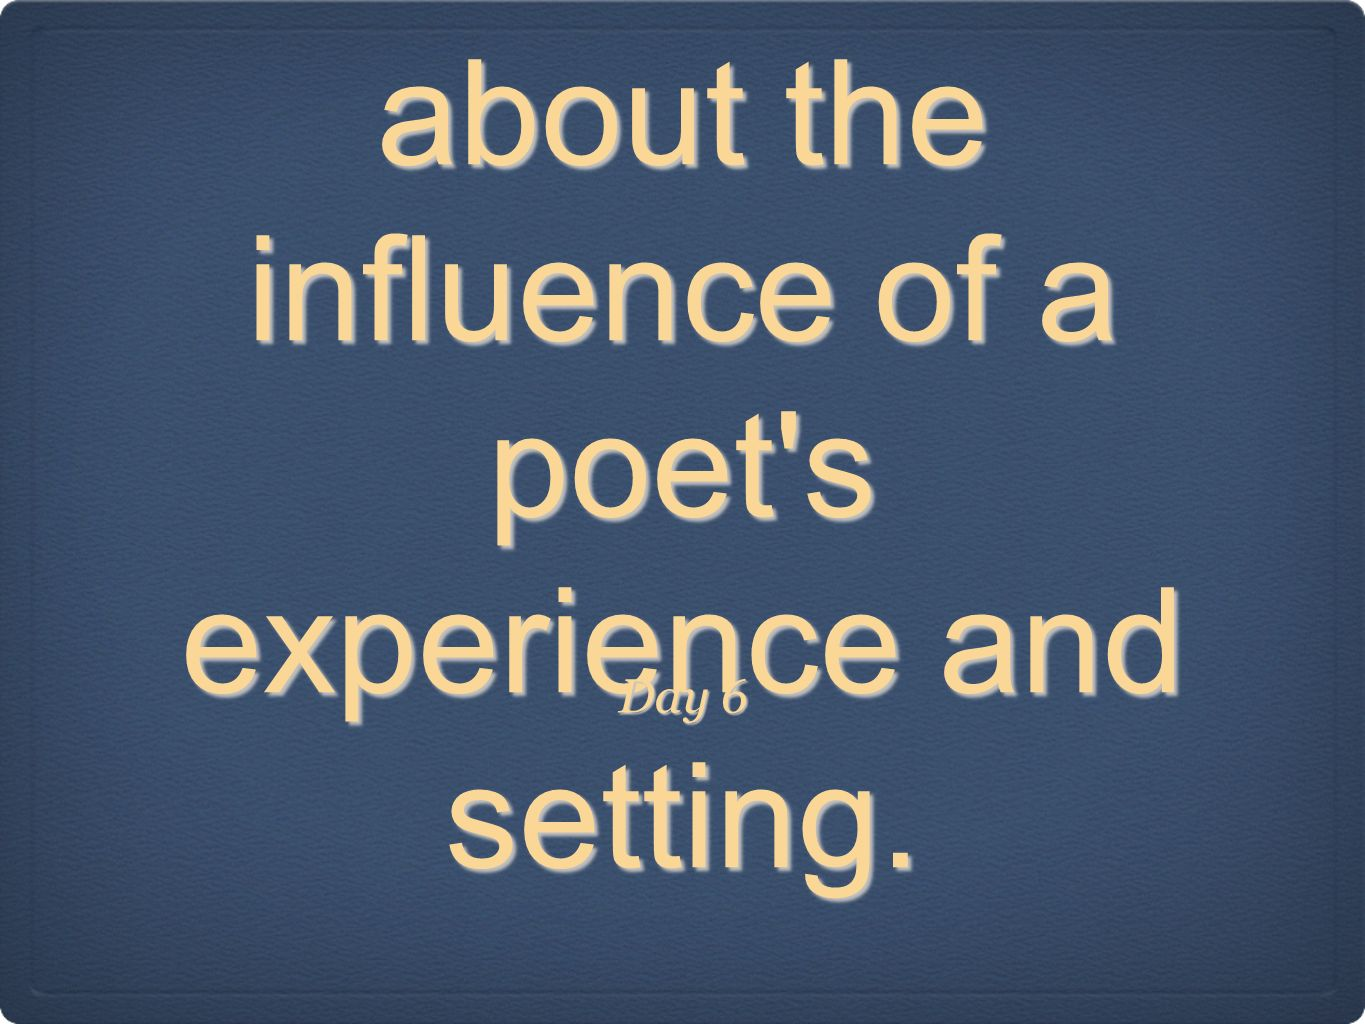 KBAD think about the influence of a poet's experience and setting. Day 6